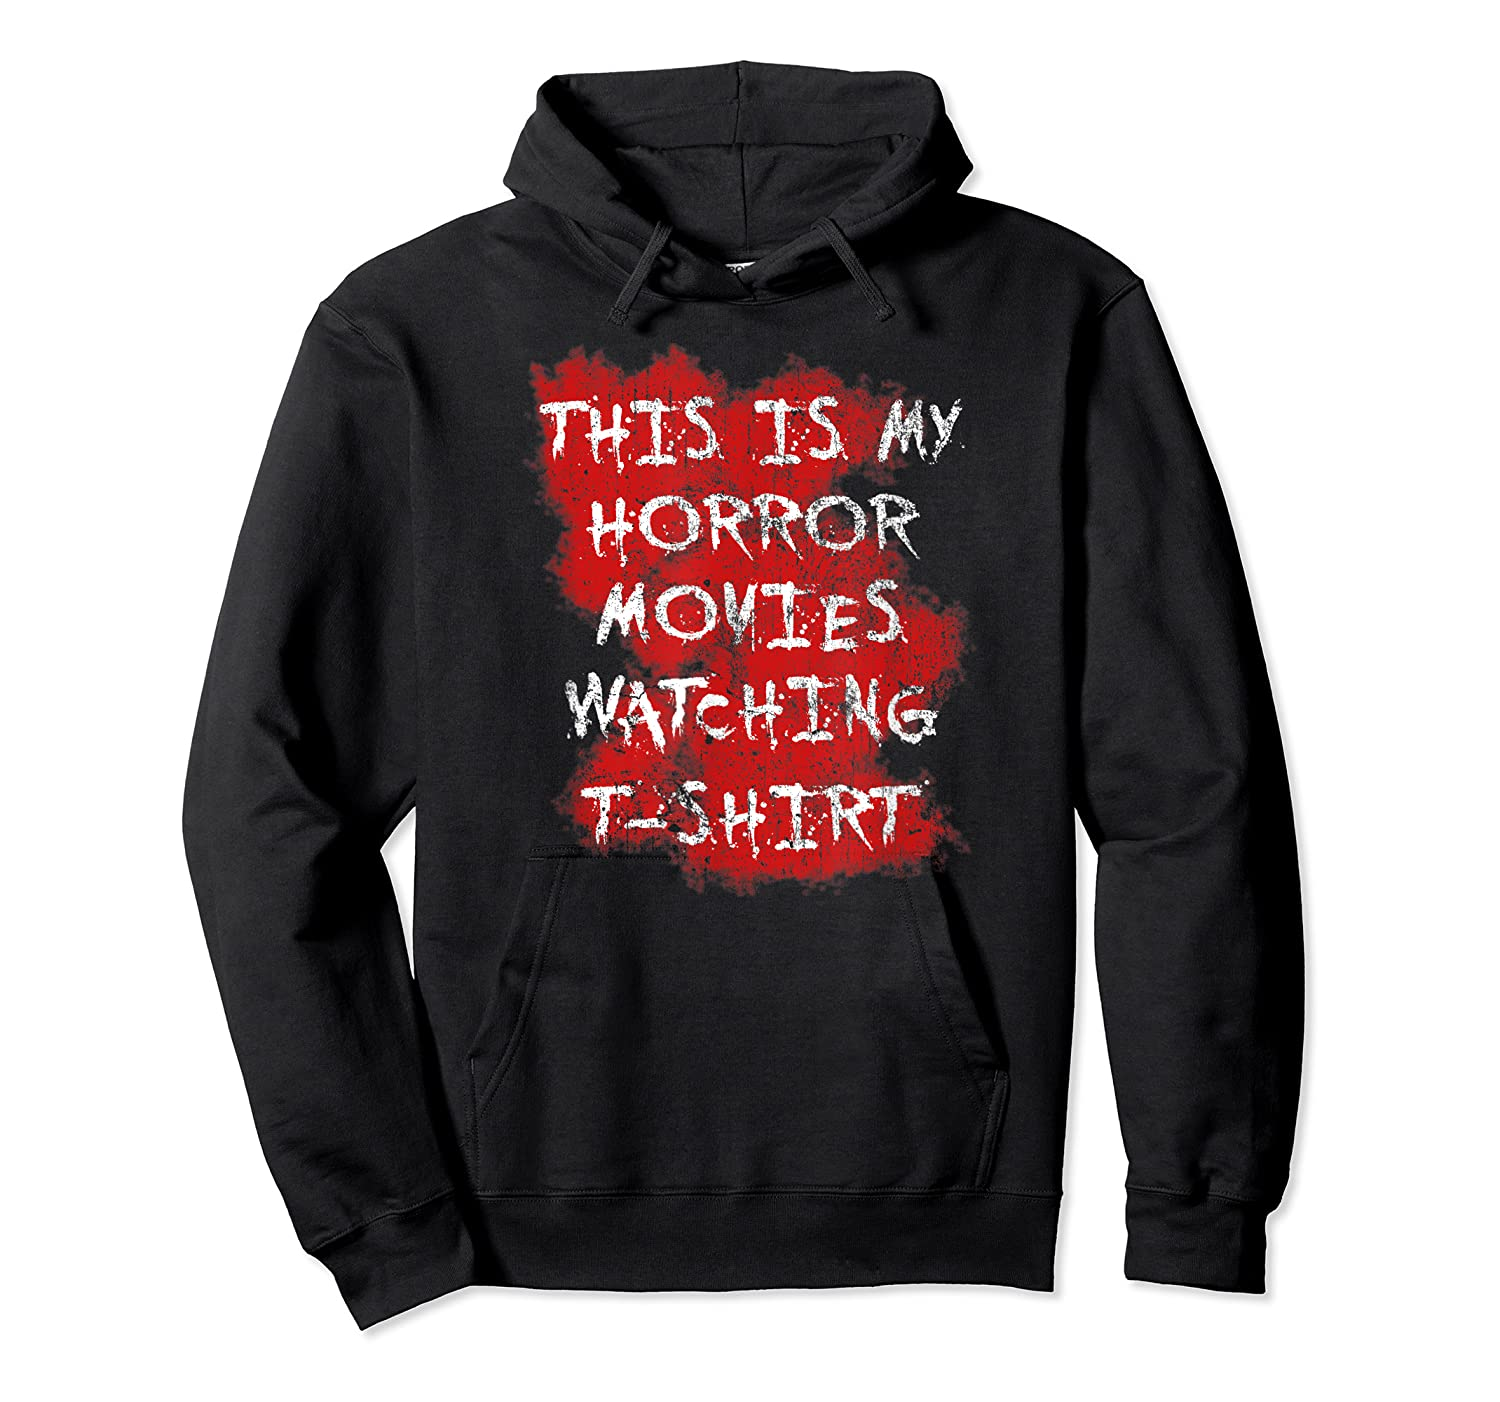 My Horror Movie Watching Tshirt - Scary Movie Lover Clothing Unisex Pullover Hoodie